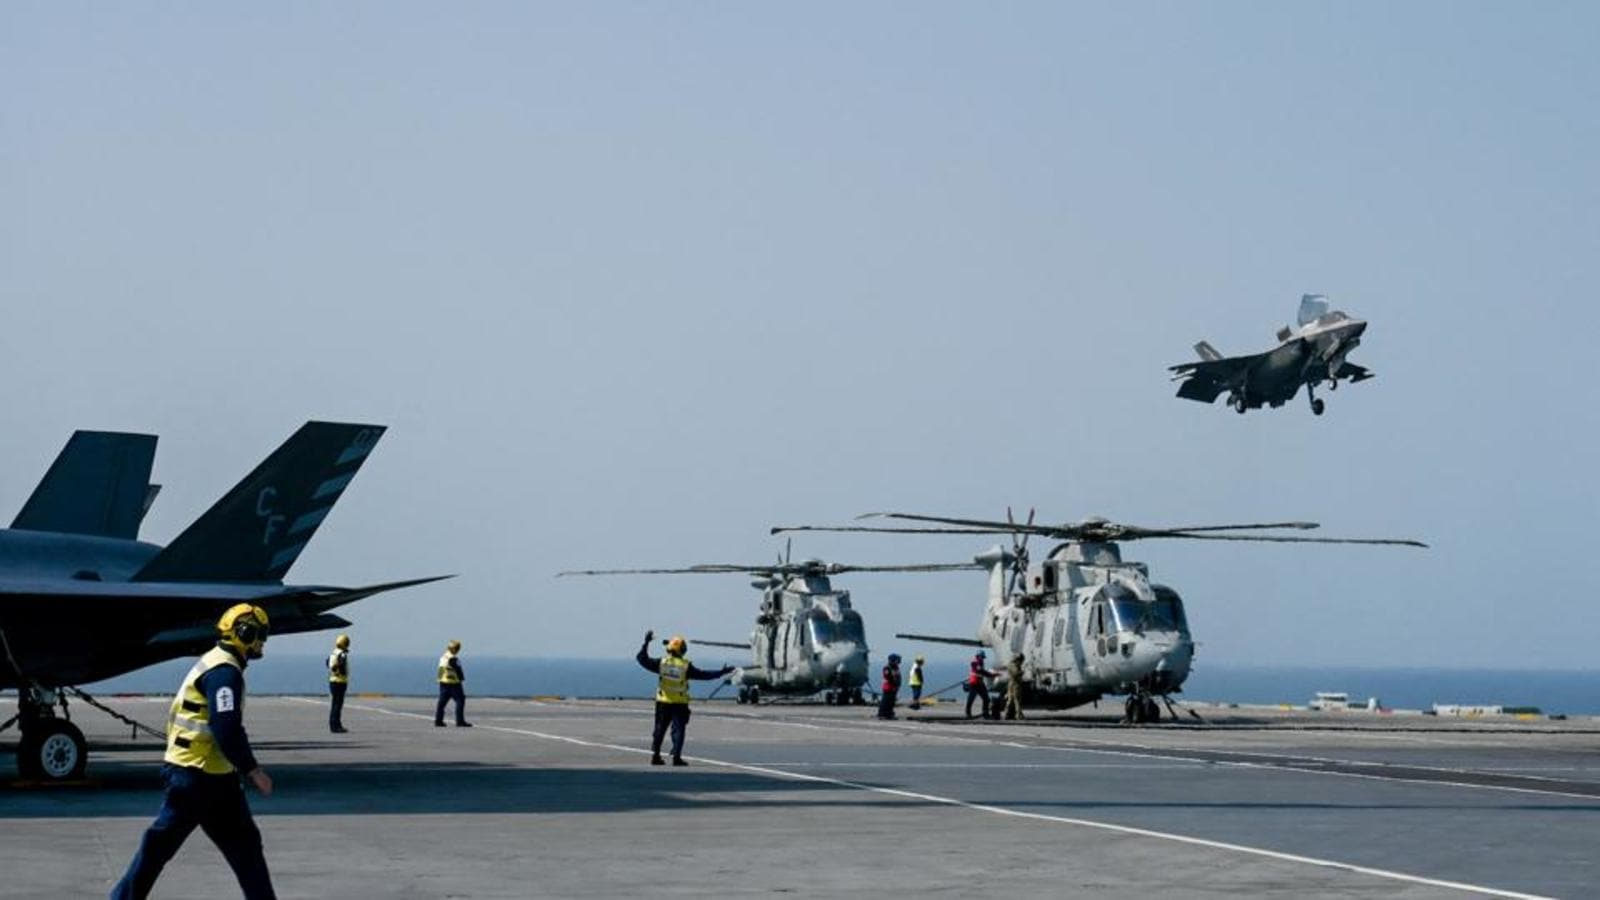 UK's Carrier Strike Group warship at Mumbai coast for joint exercises with Indian Navy